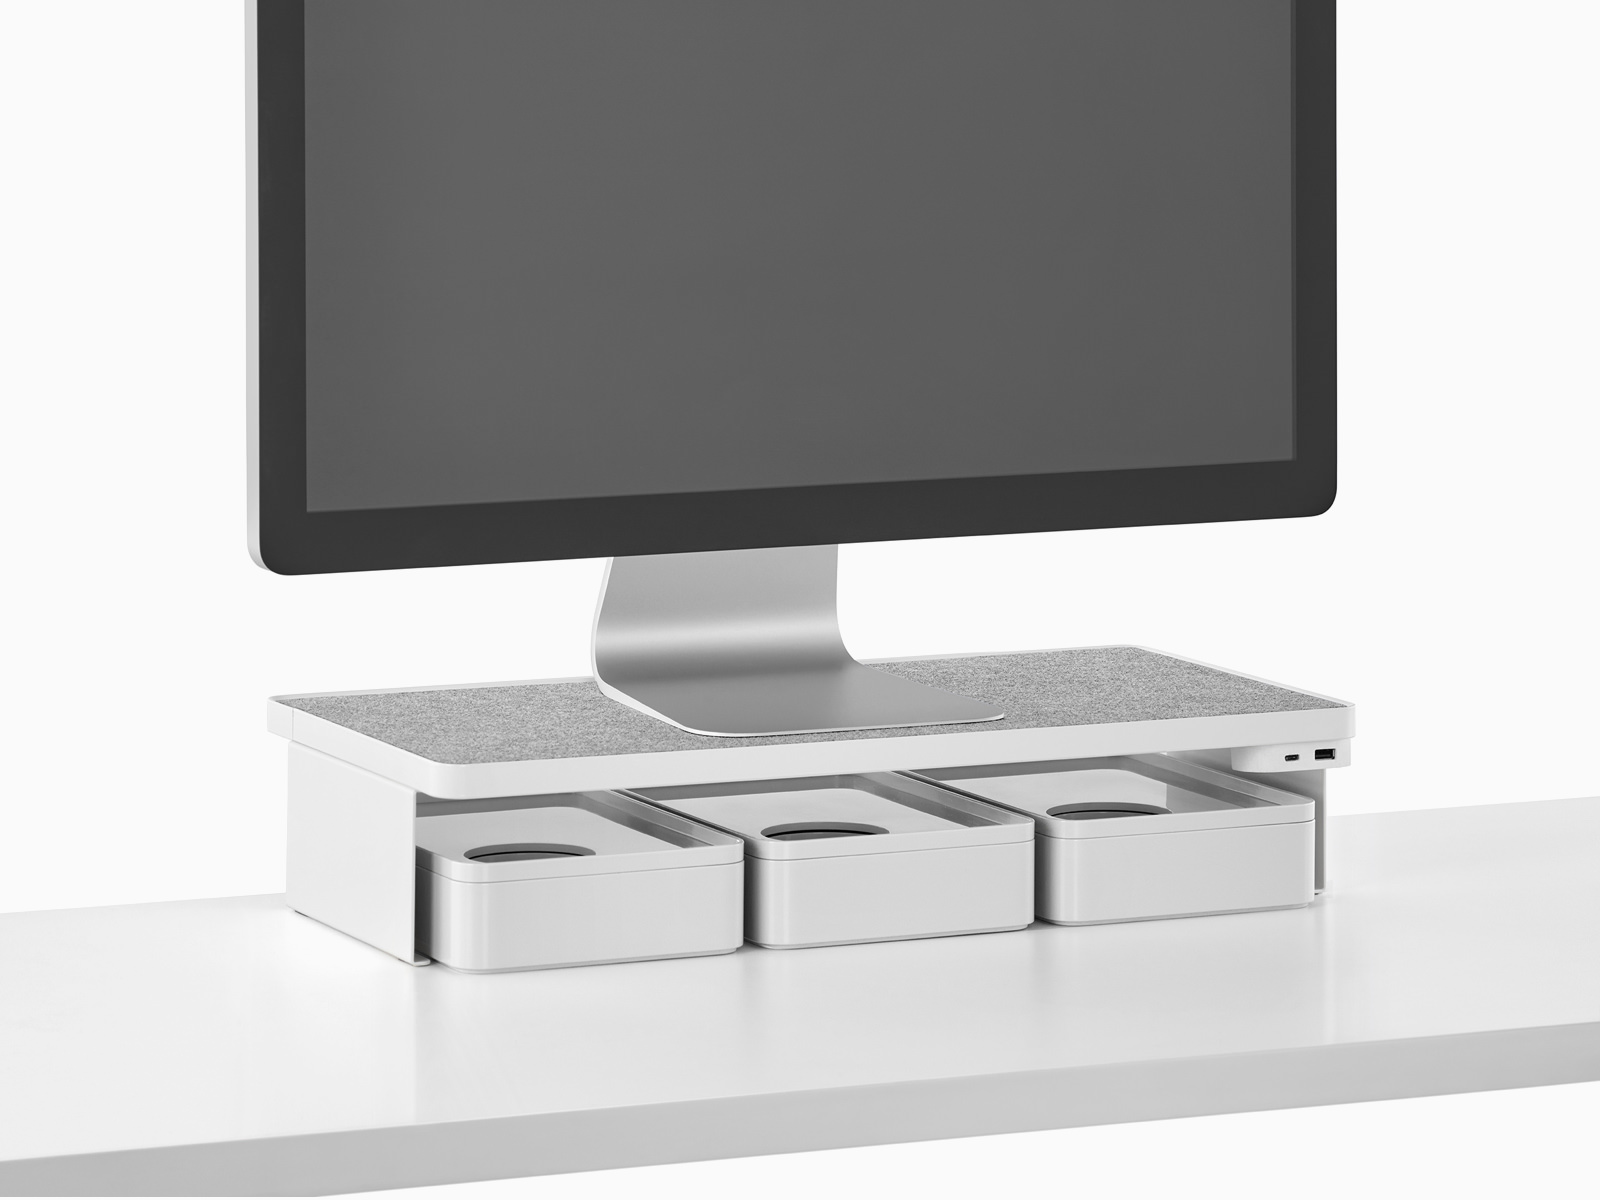 A freestanding monitor sits on a Ubi Monitor Platform Shelf with a USB power module and three storage boxes below.